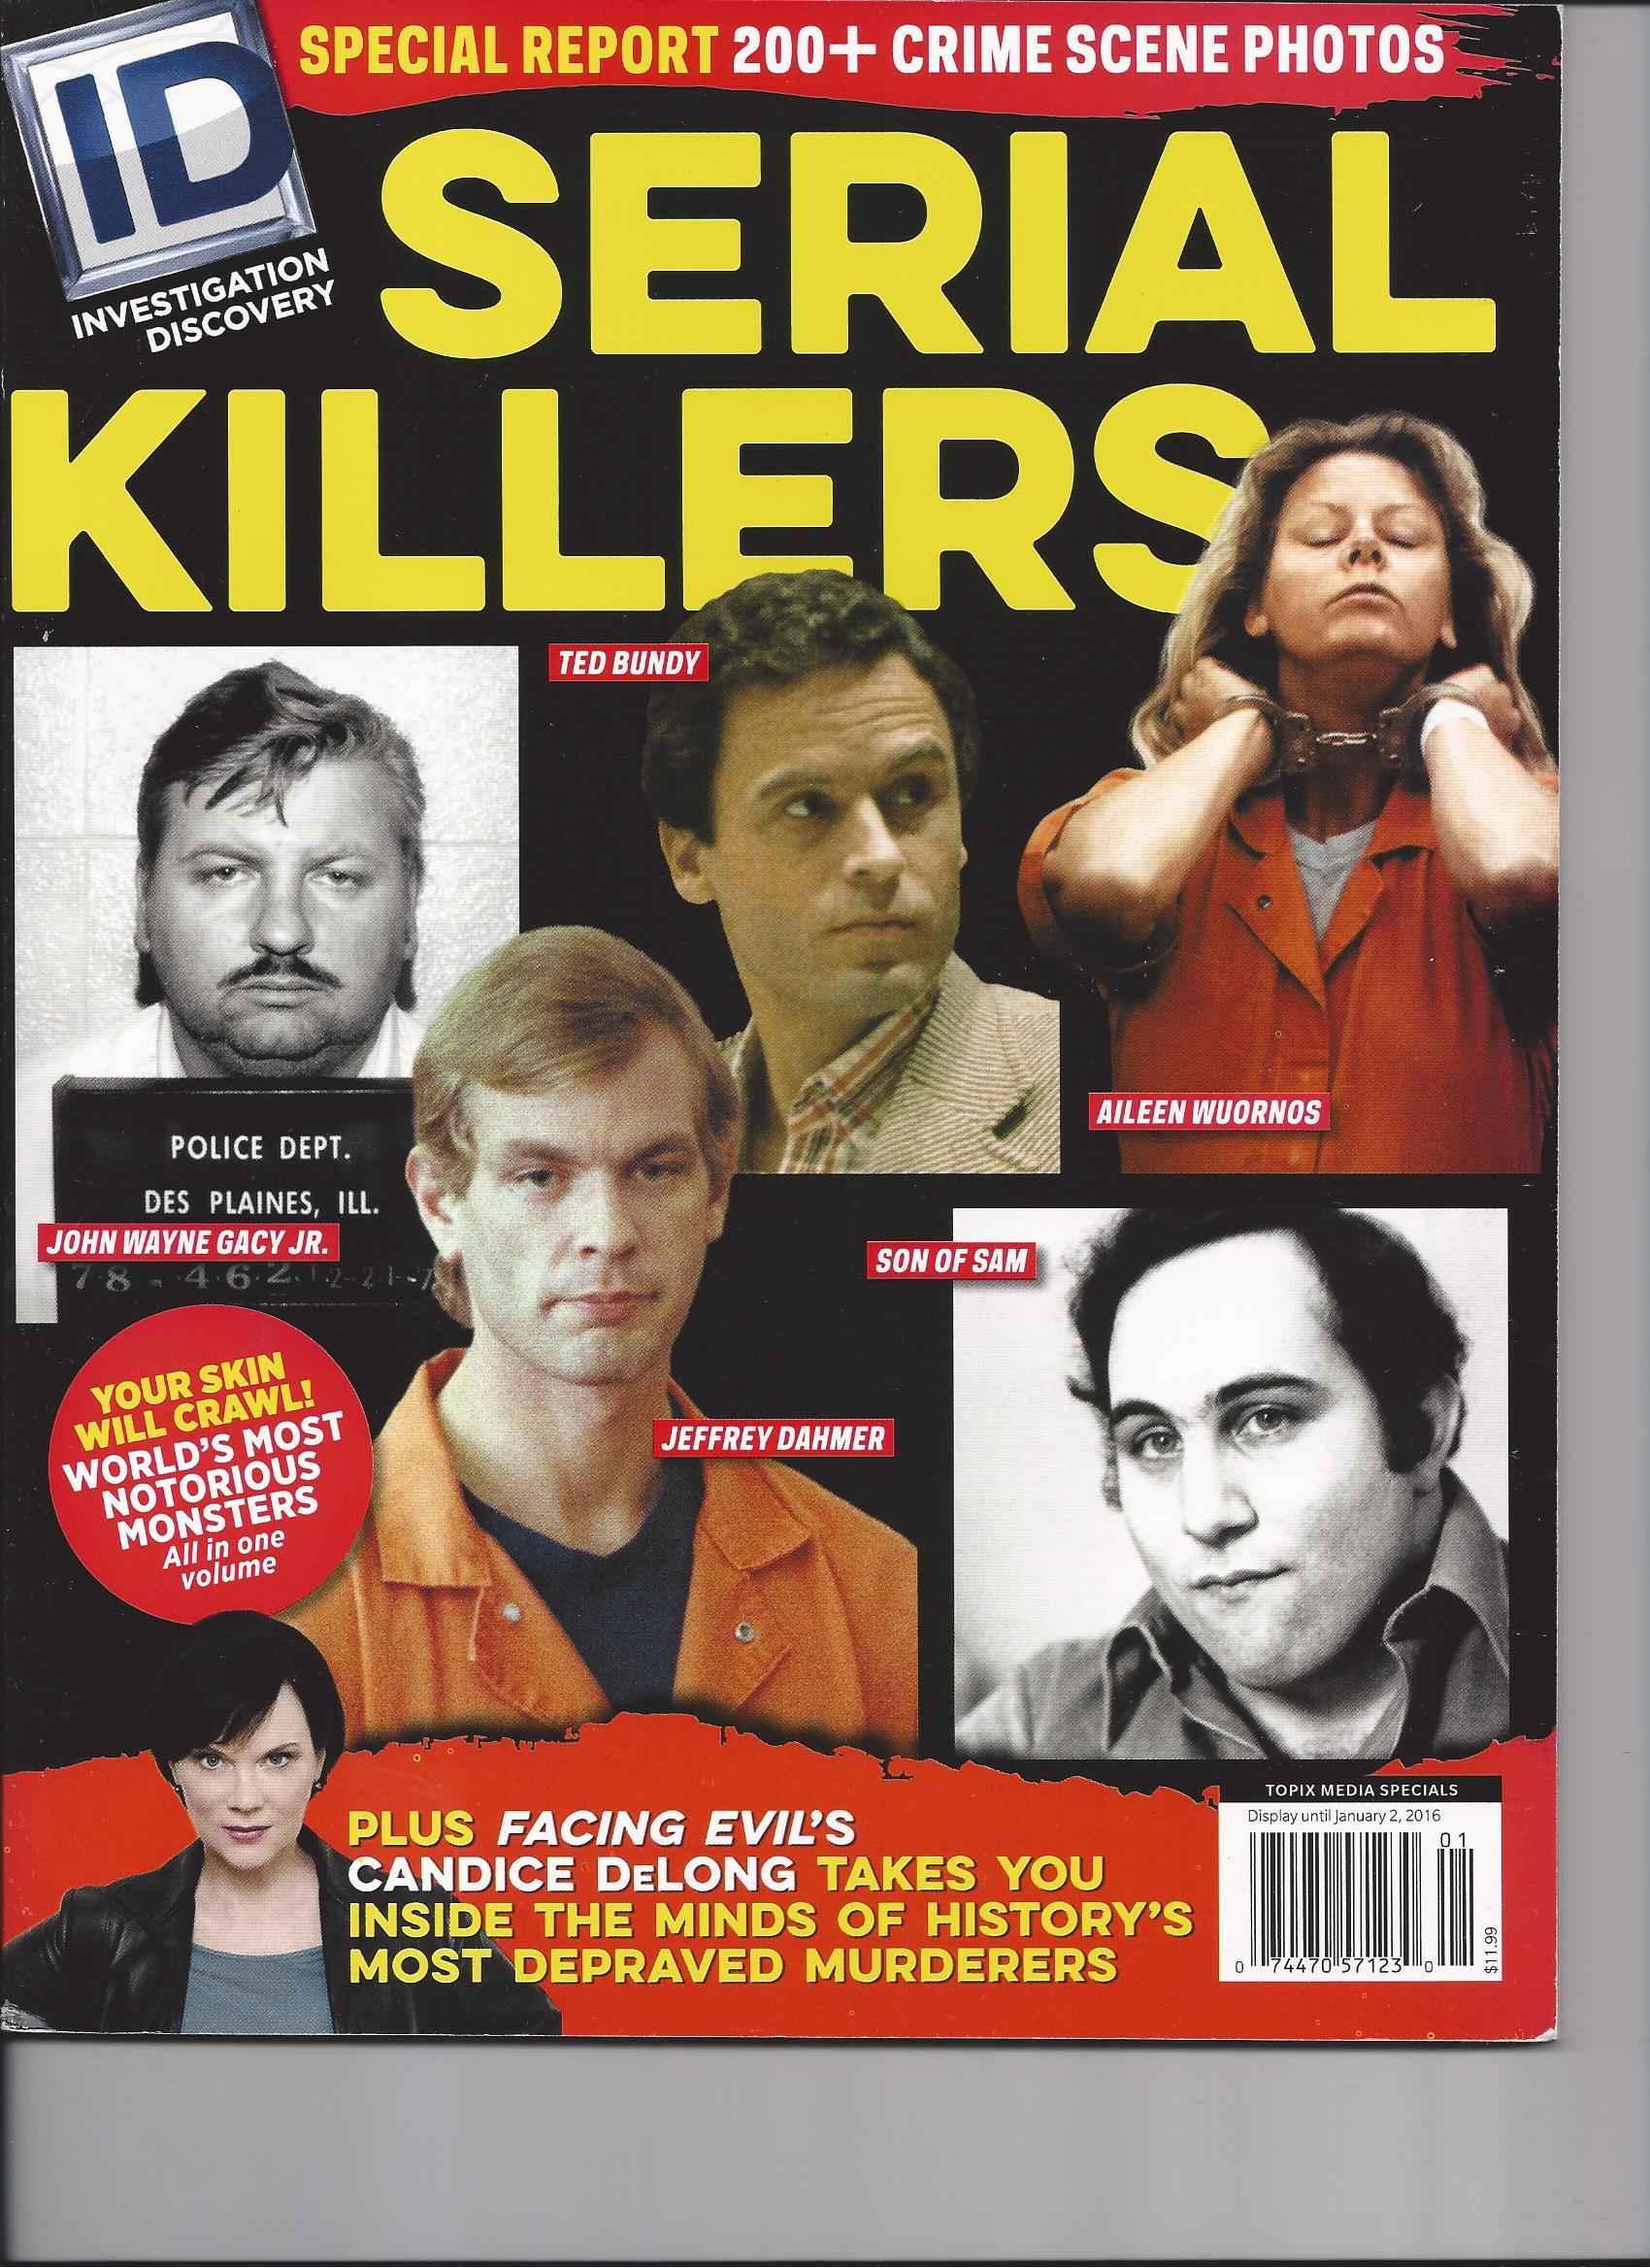 Serial Killers ID Investigation Discovery